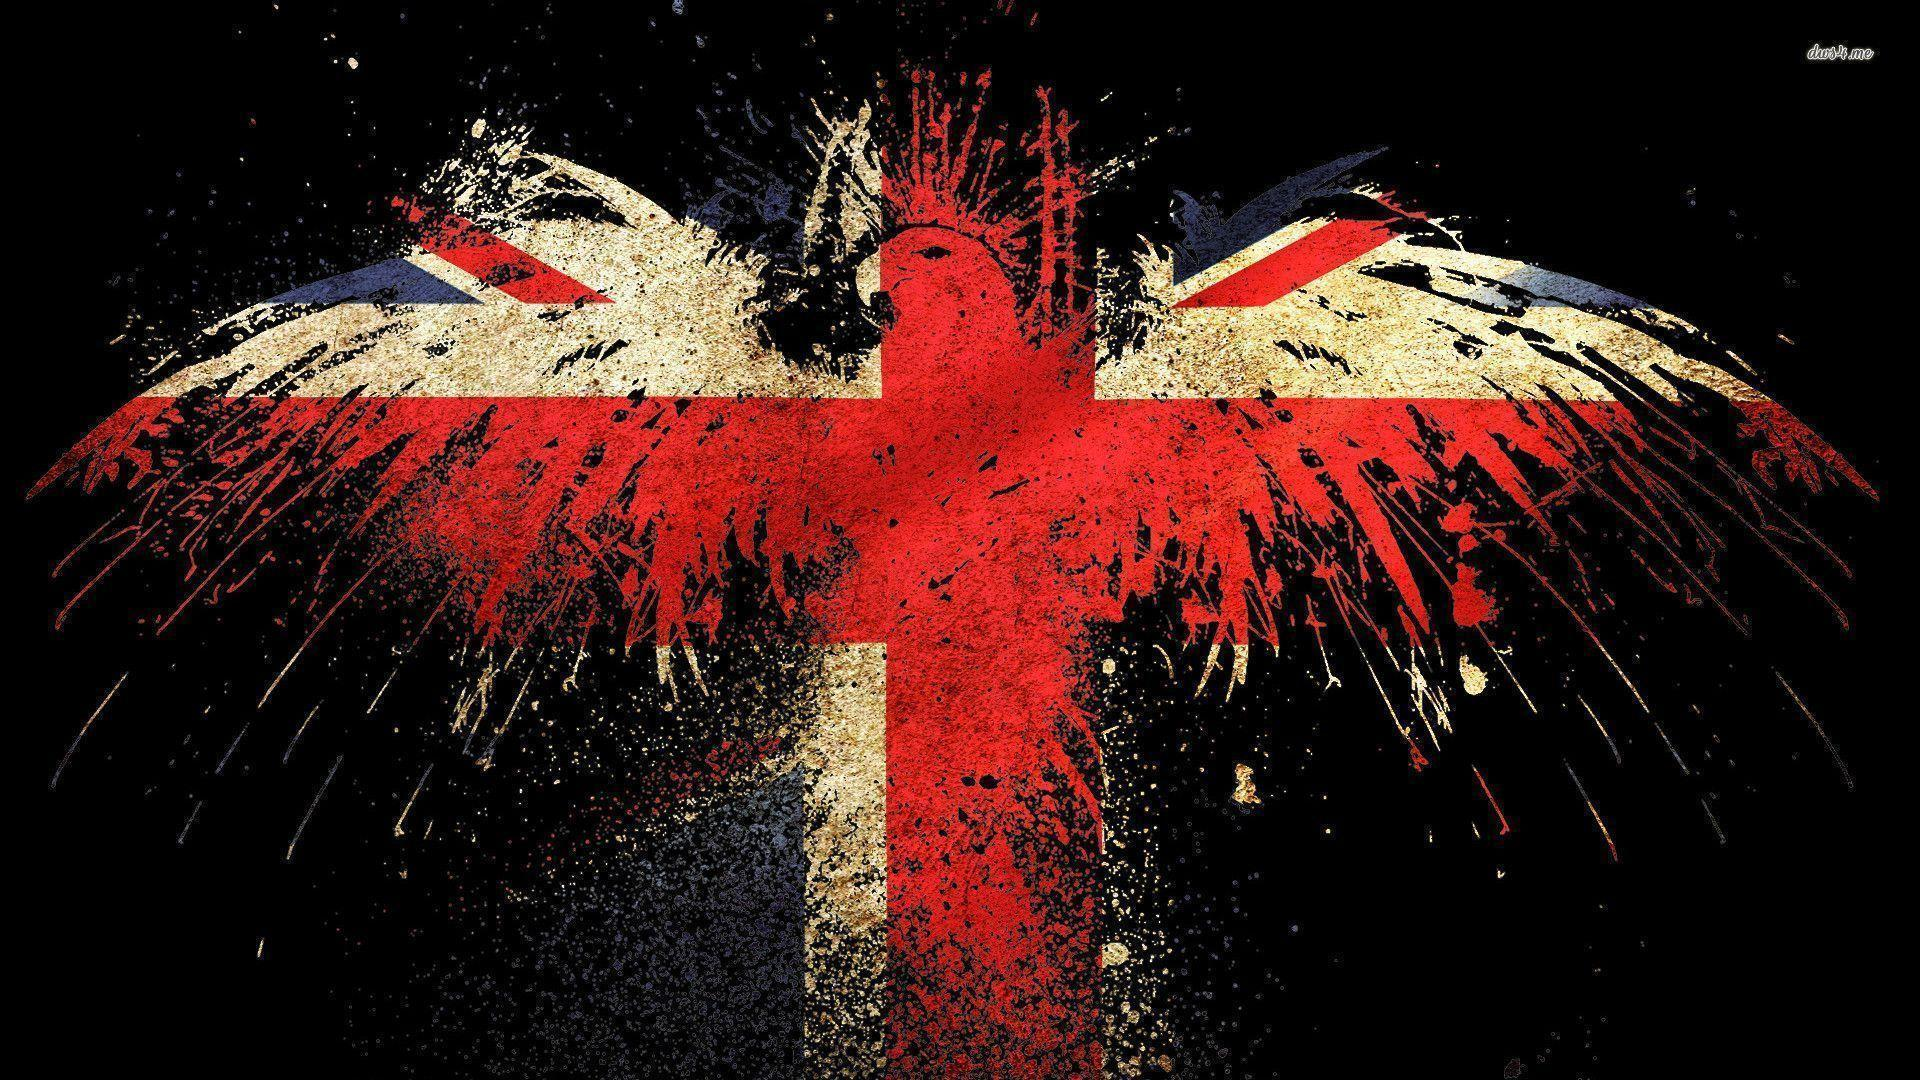 Eagle Shaped Uk Flag Wallpaper Digital Art Wallpapers 1920x1080PX ...